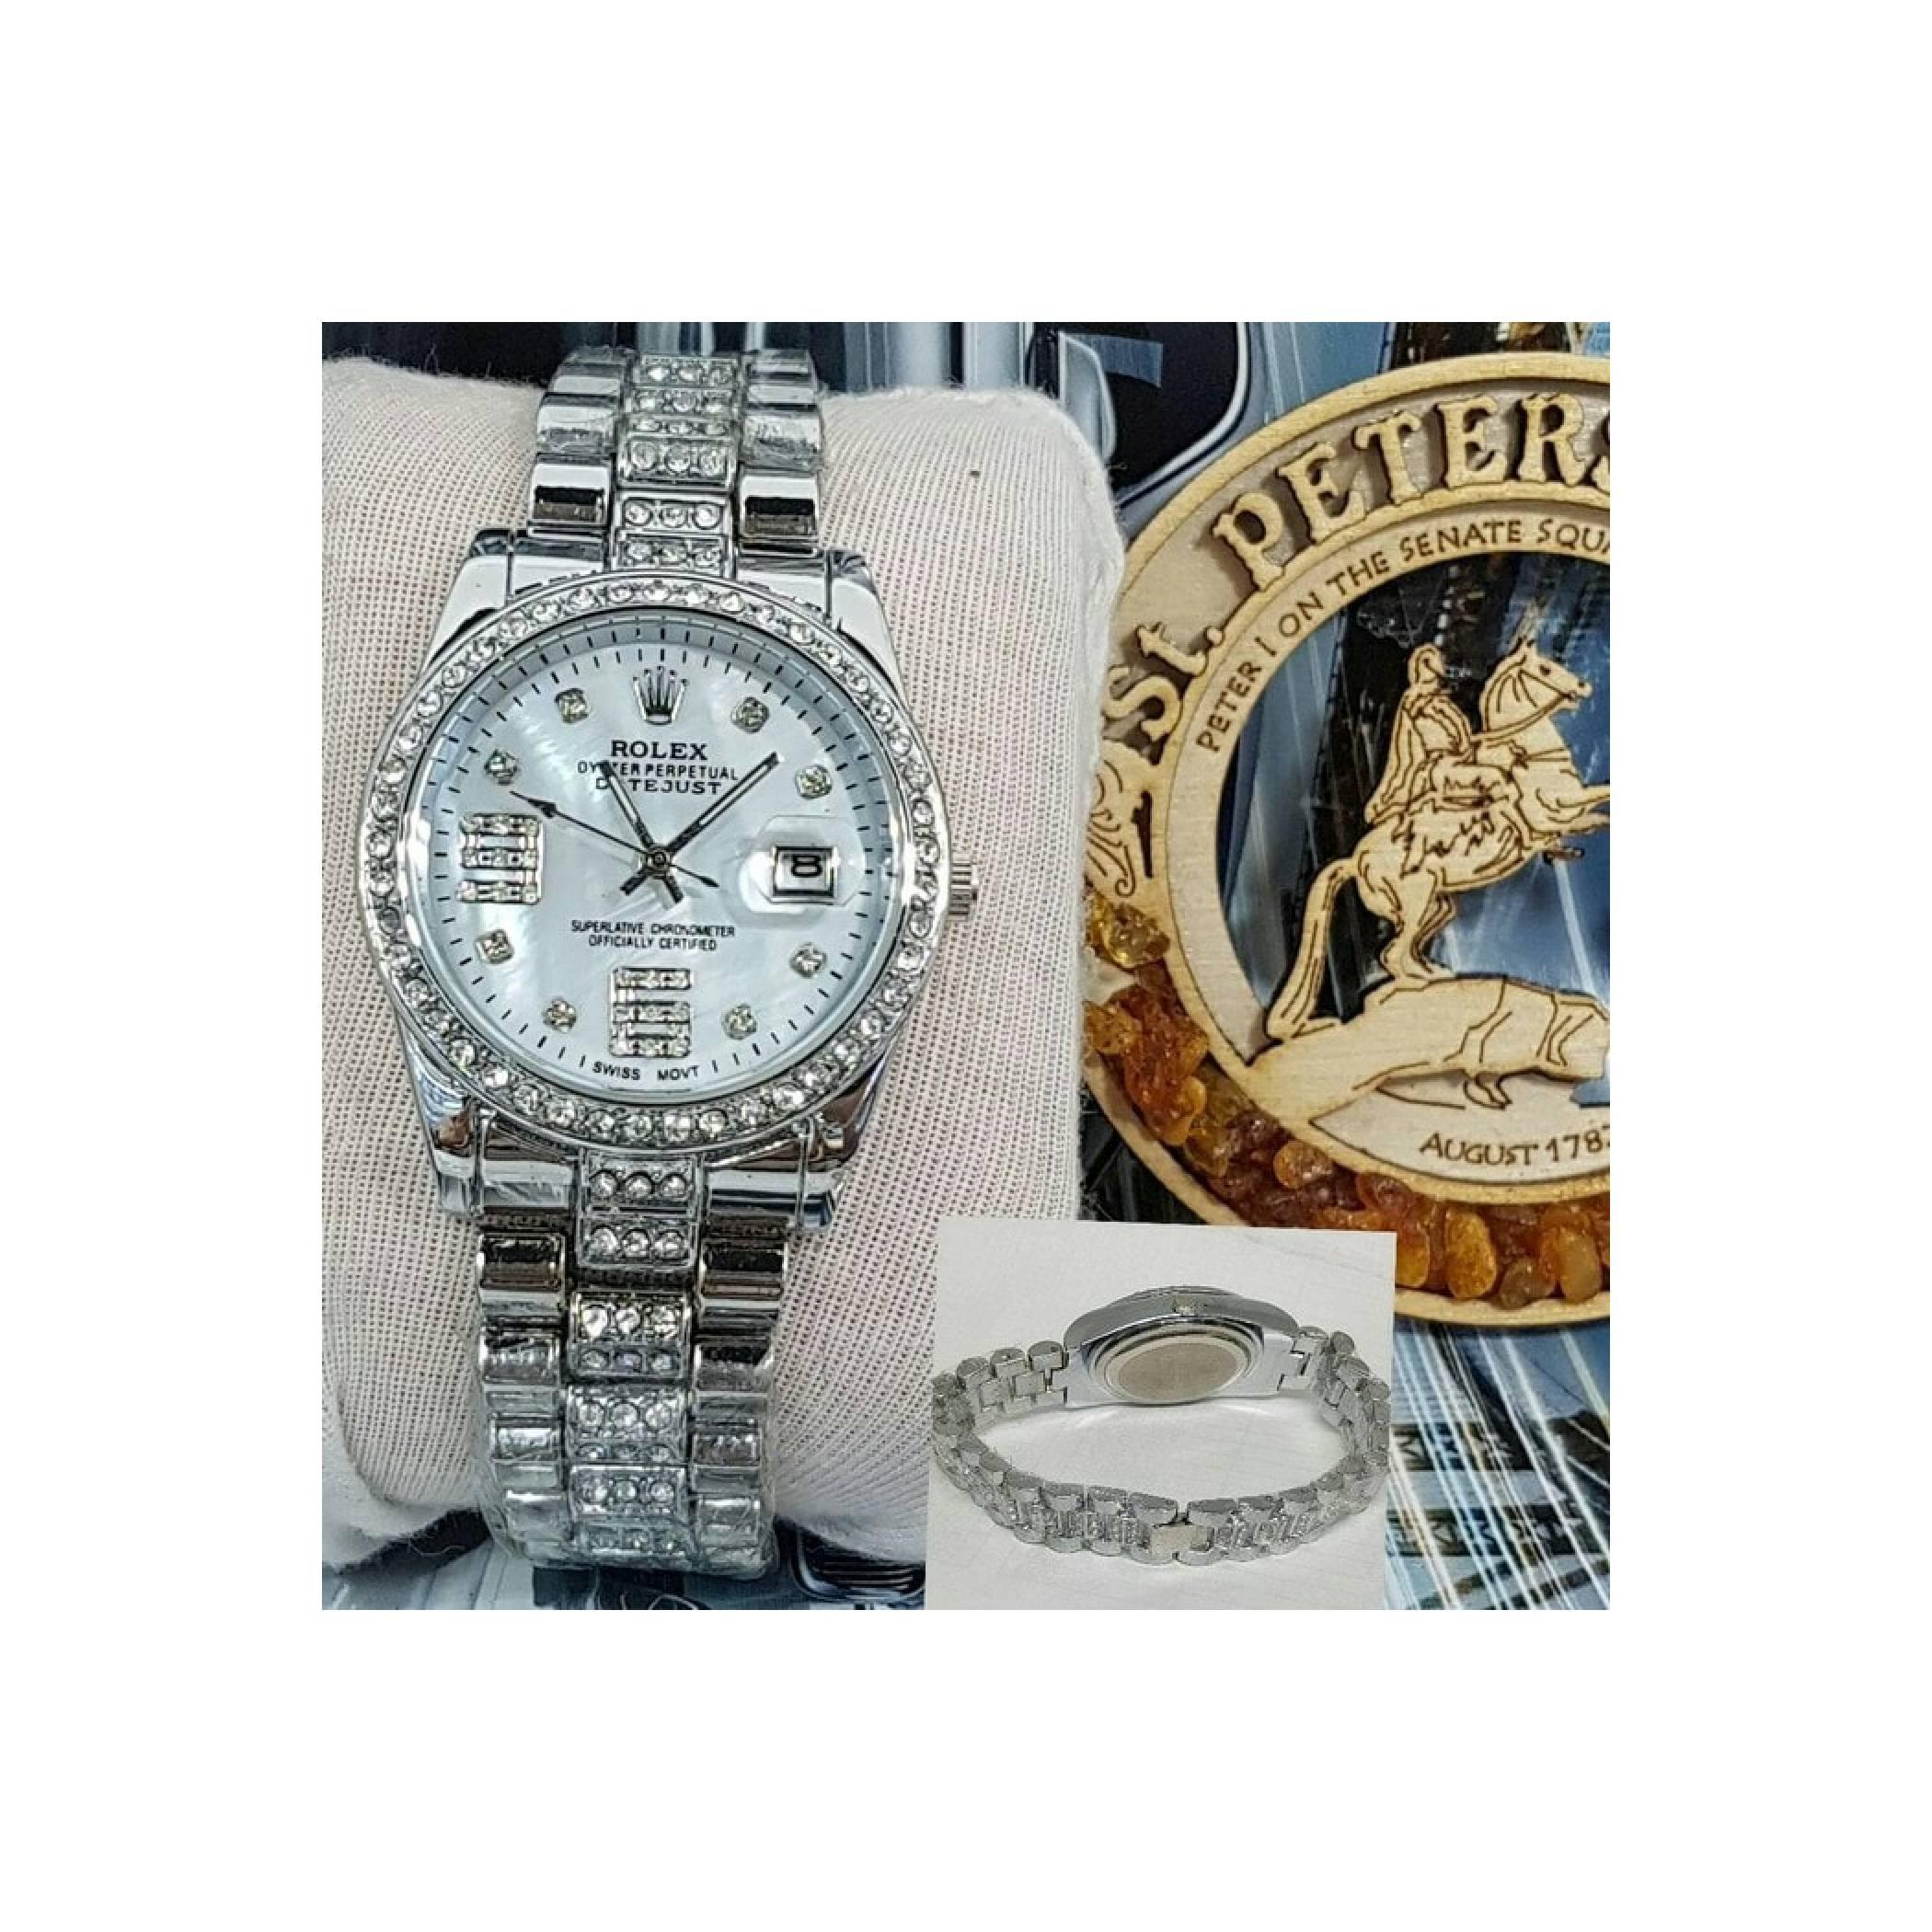 Guess Collection Gc Femme X74002l1s Jam Tangan Wanita Stainless Rosegold Steel Y05009m7 Rolex Oeymaster Aigner Casio Expedition